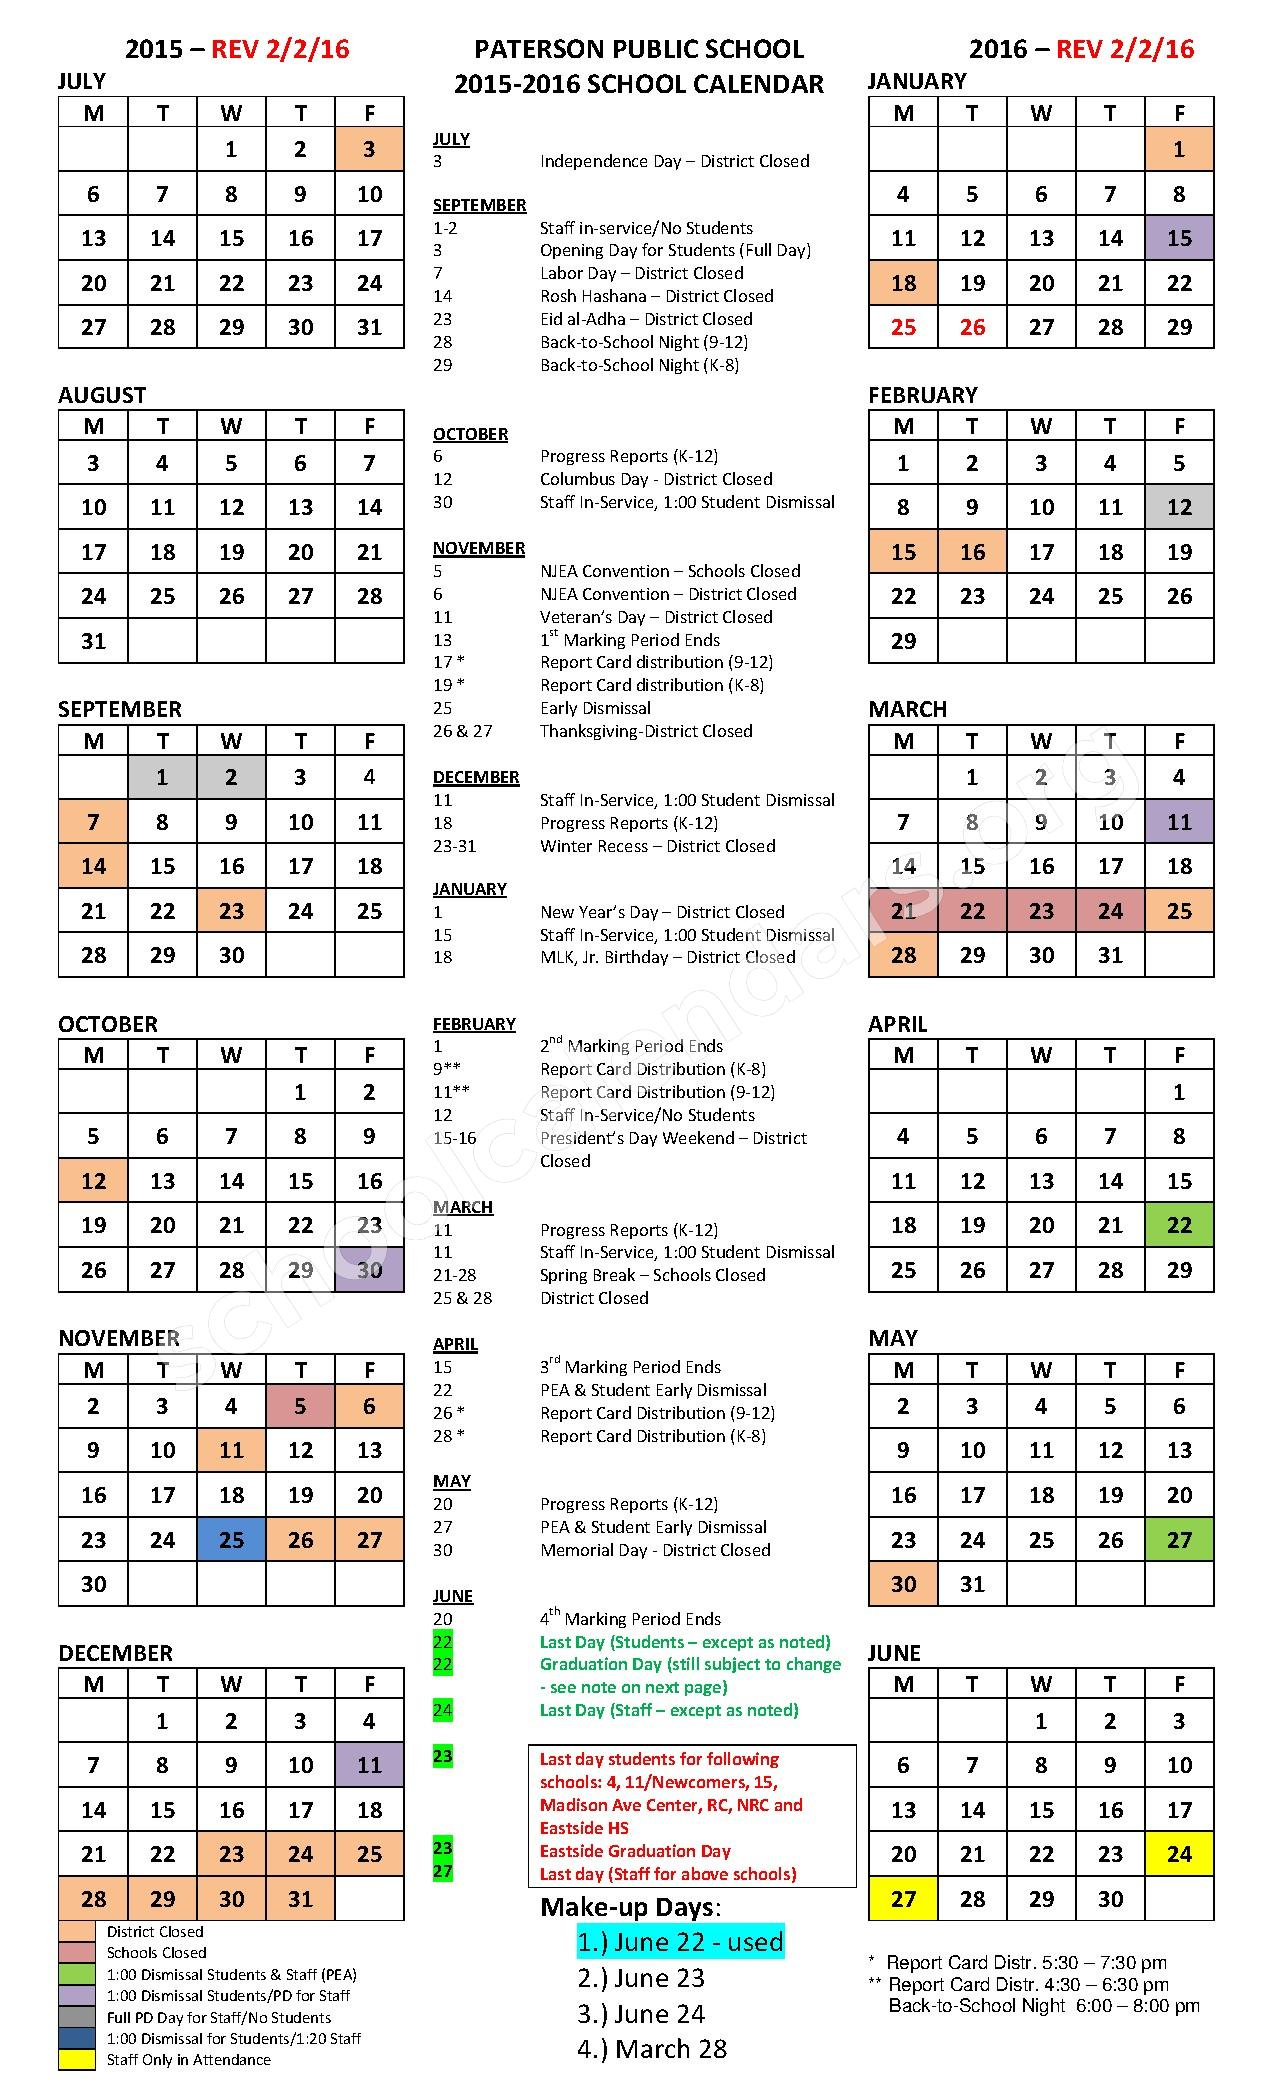 2015 - 2016 District Calendar – Paterson Public Schools – page 1